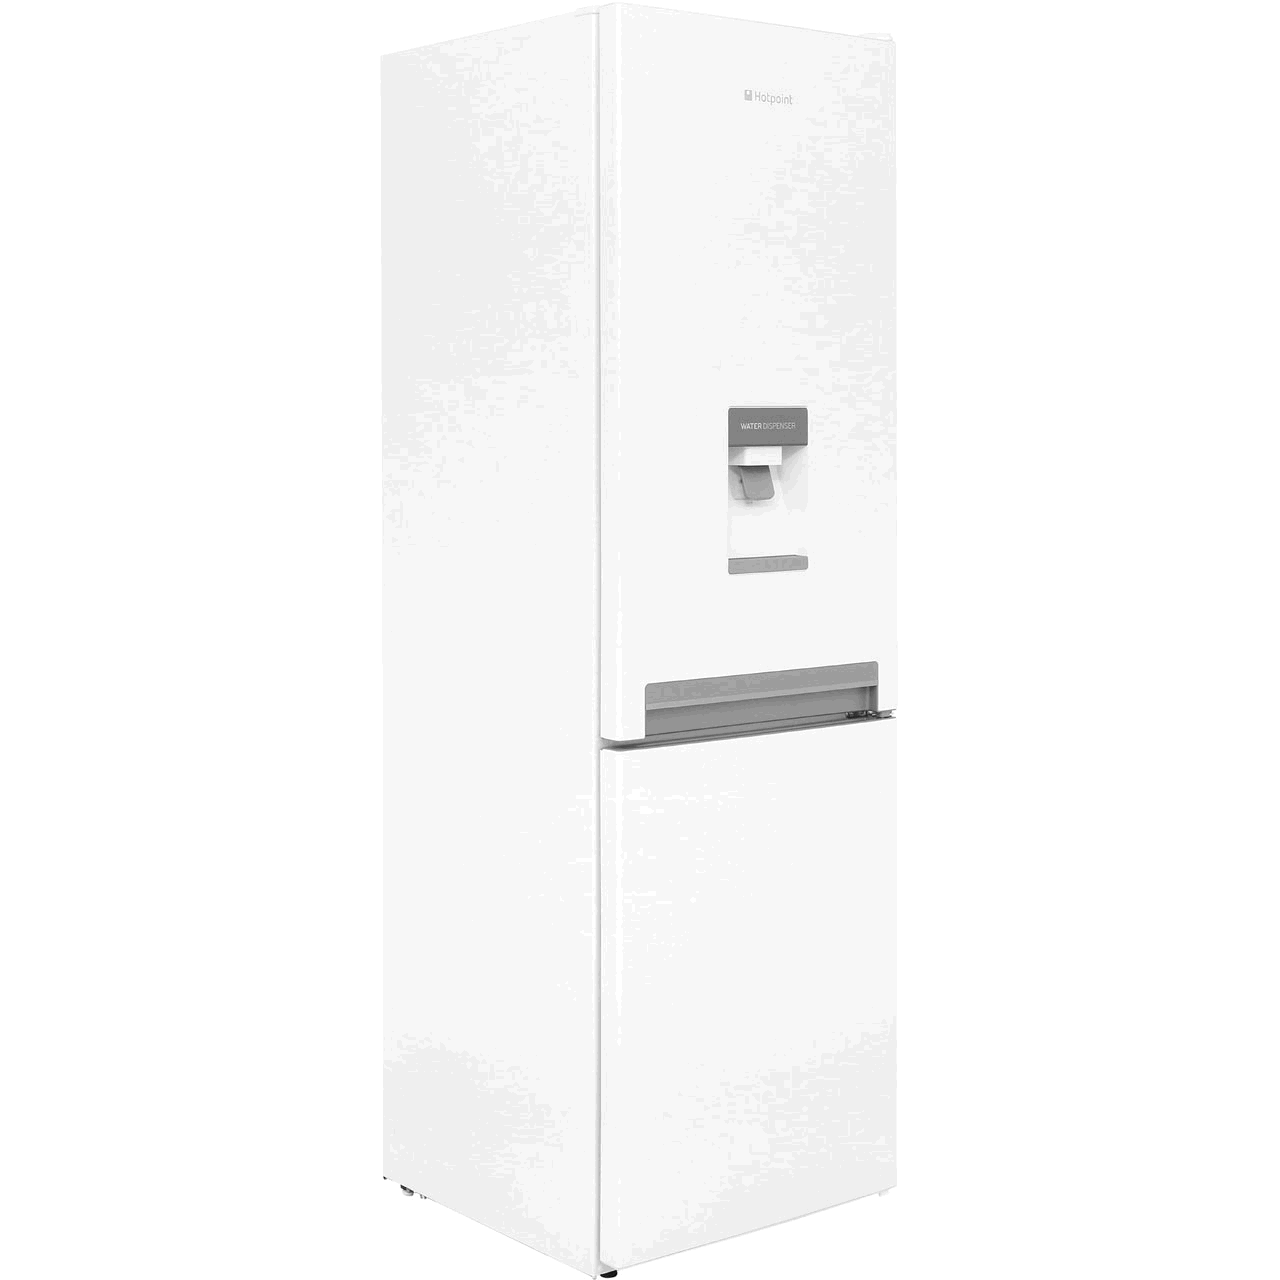 Hotpoint Low Frost  Fridge Freezer WHITE Water Through Door 188.8cm 60cm Electronic Control